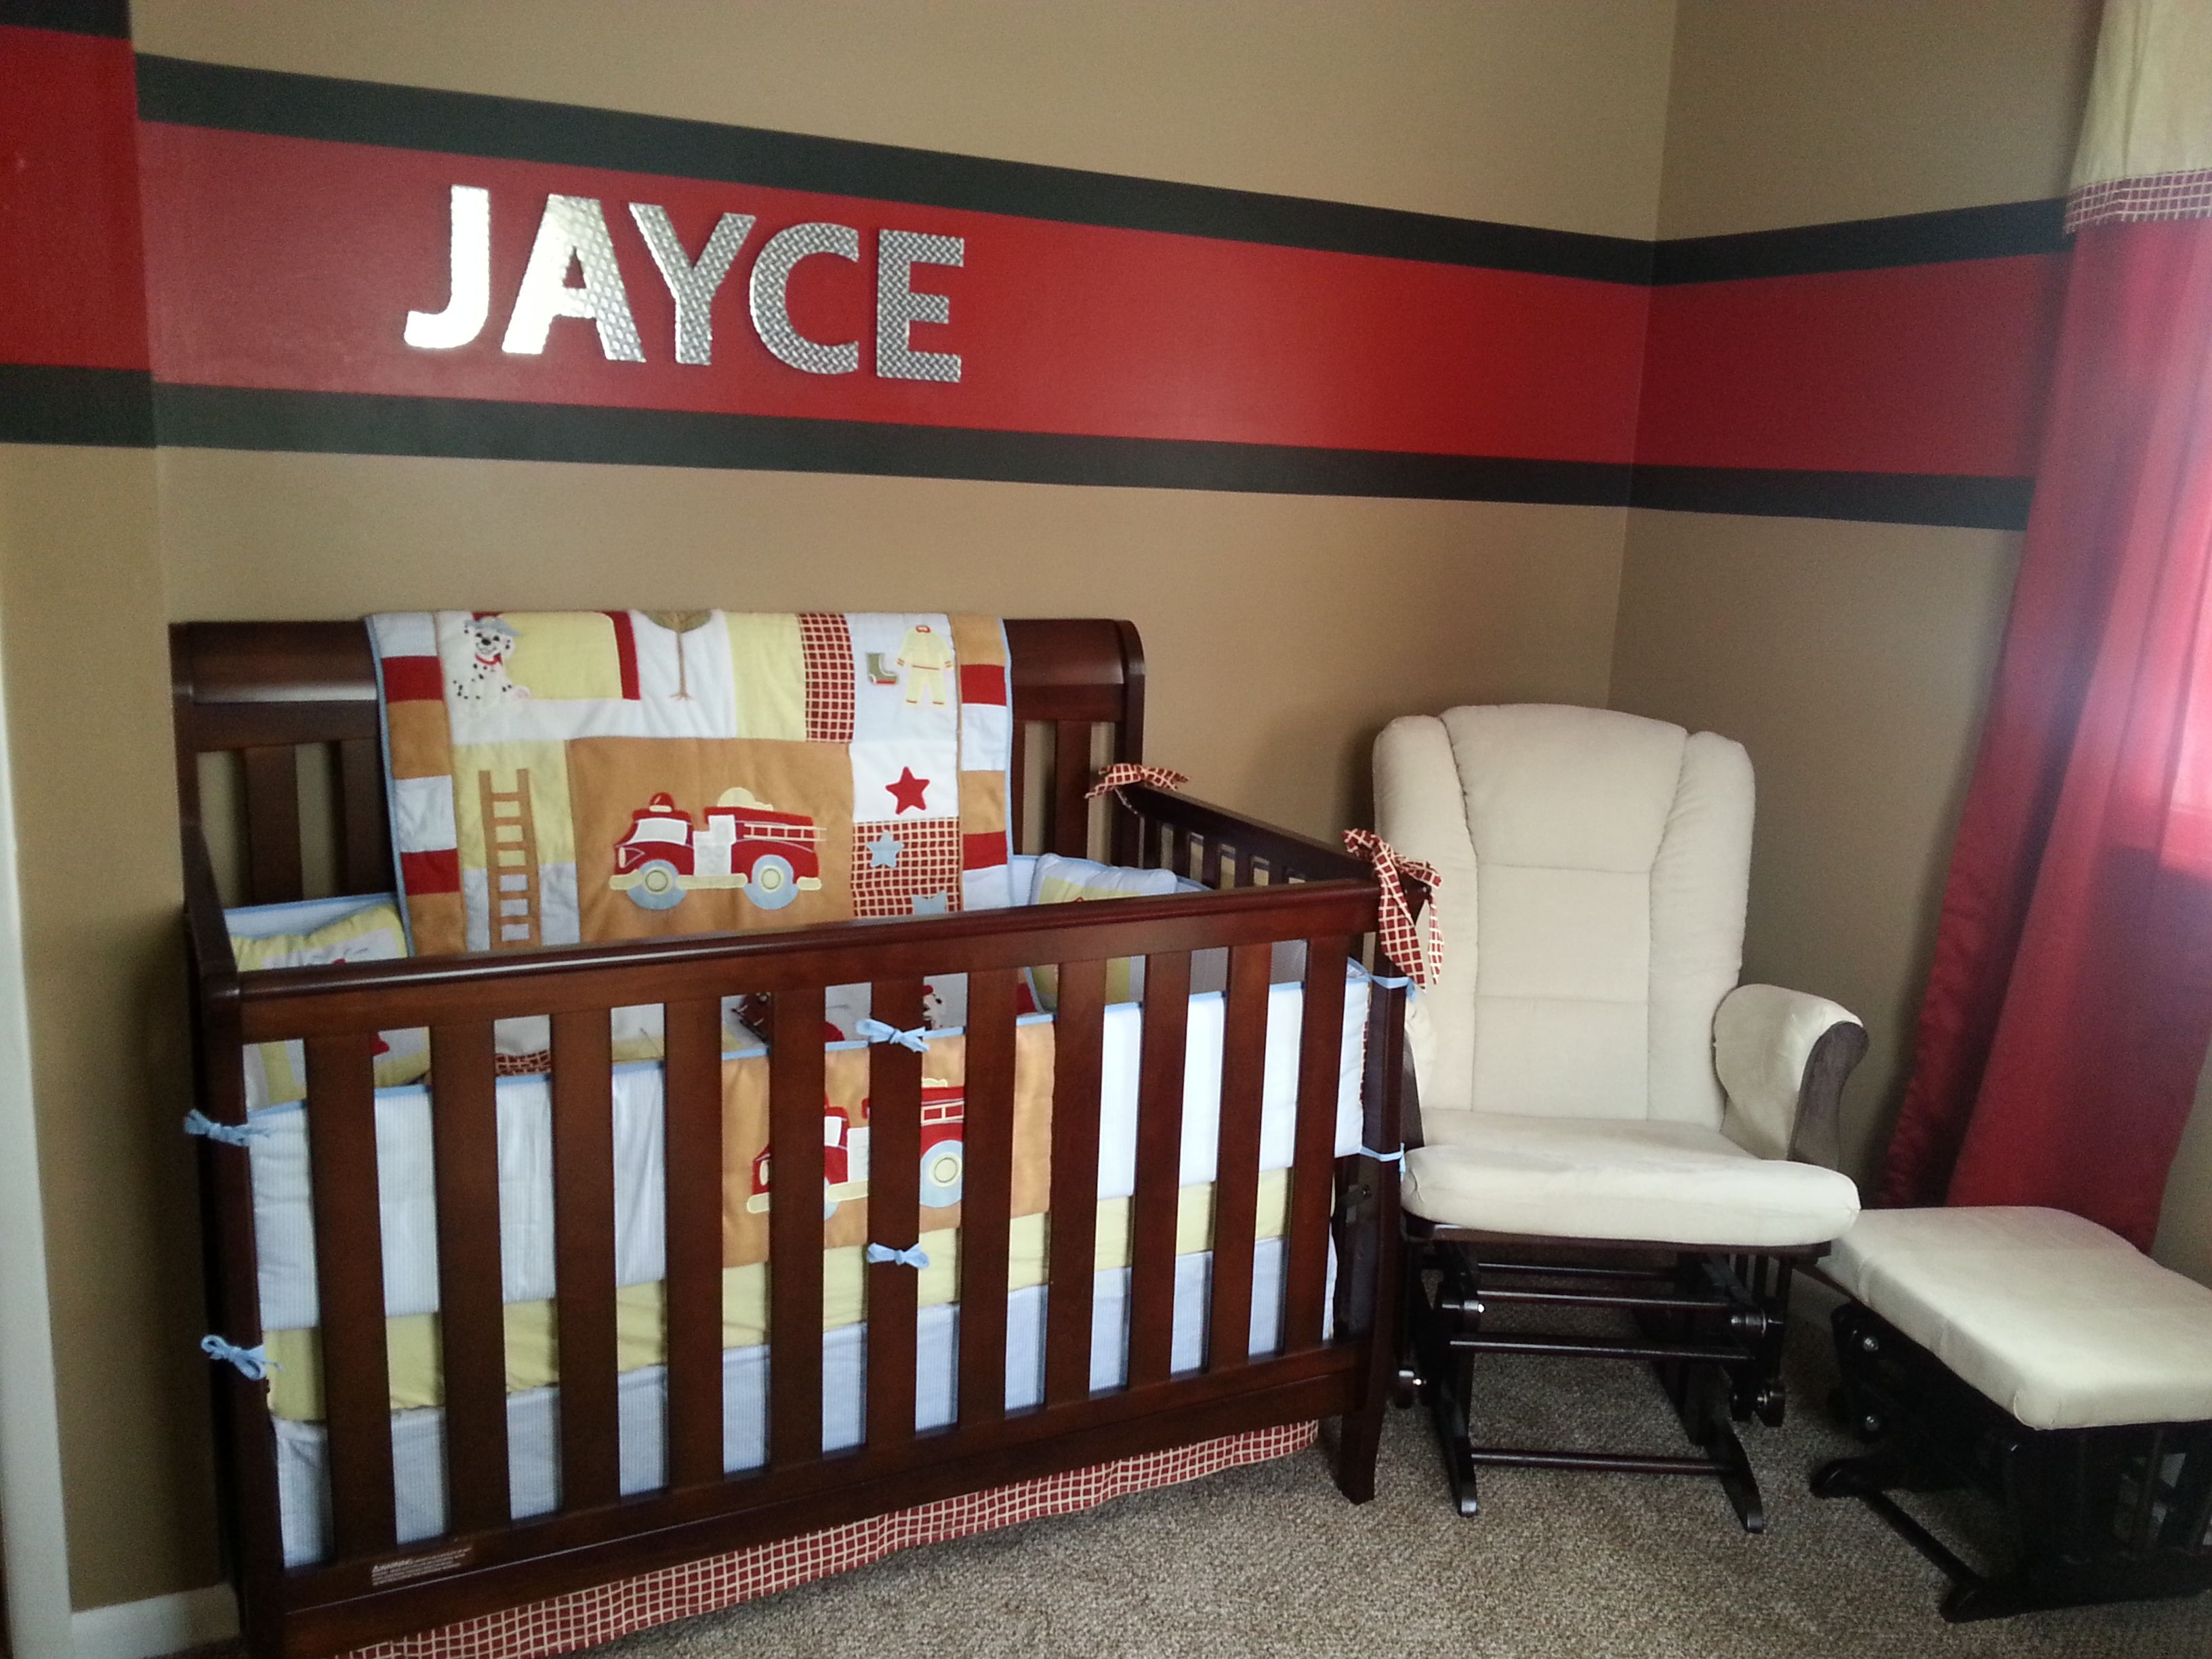 Our firefighter nursery. Top 25 ideas about Firefighter Room on Pinterest   Firefighter